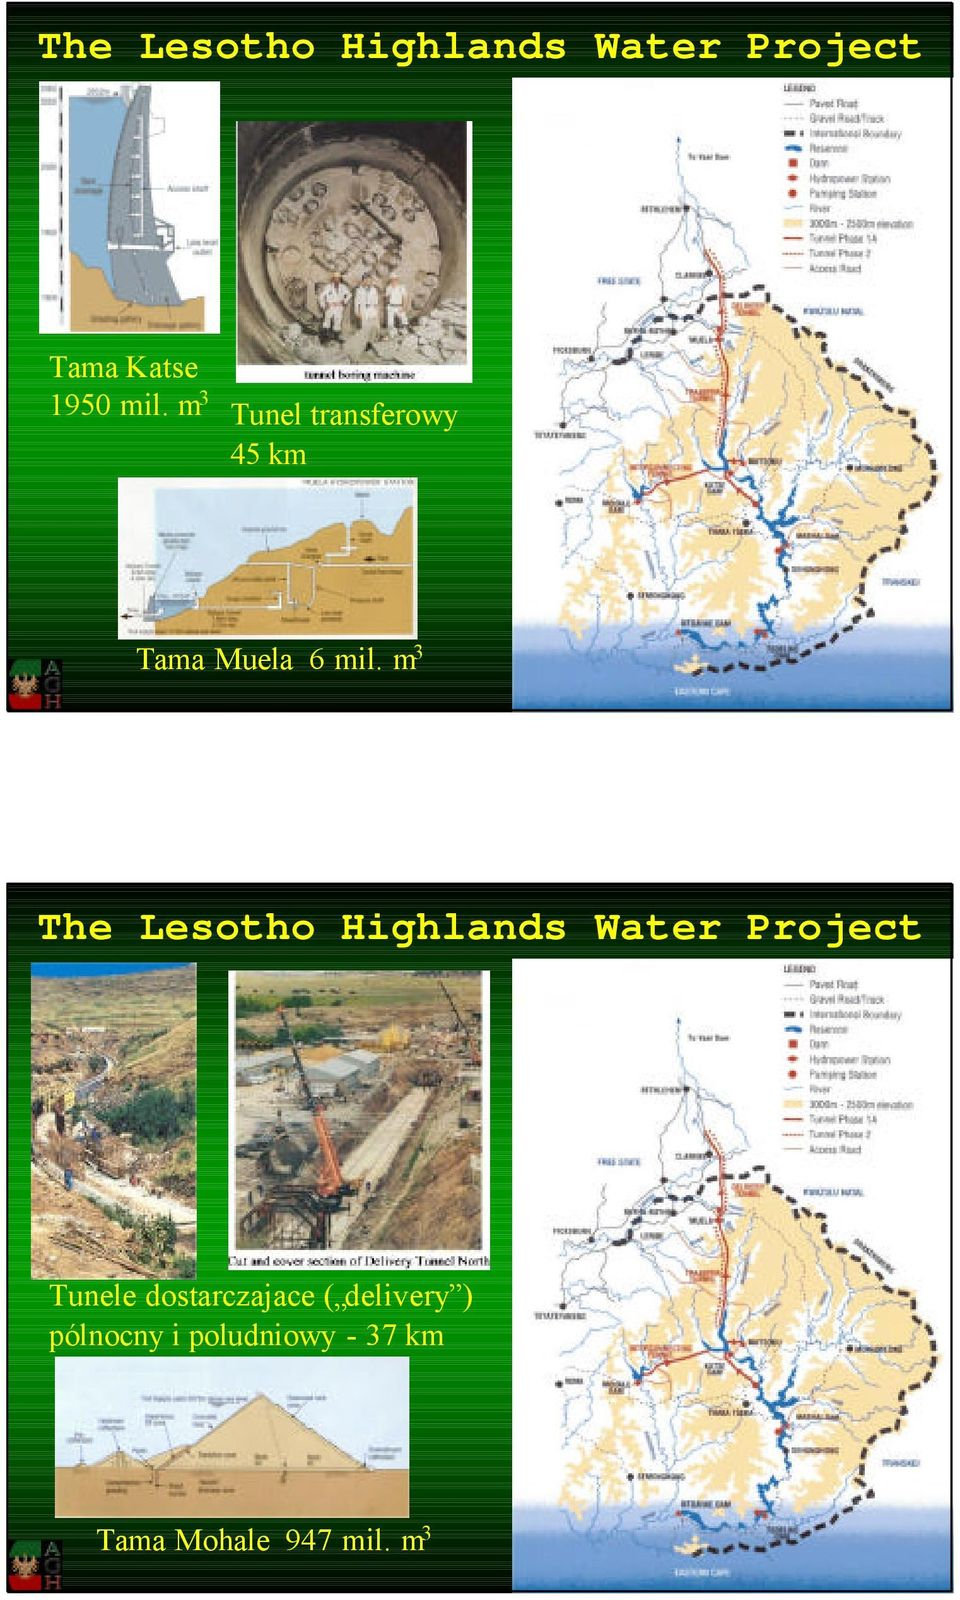 m 3 The Lesotho Highlands Water Project Tunele